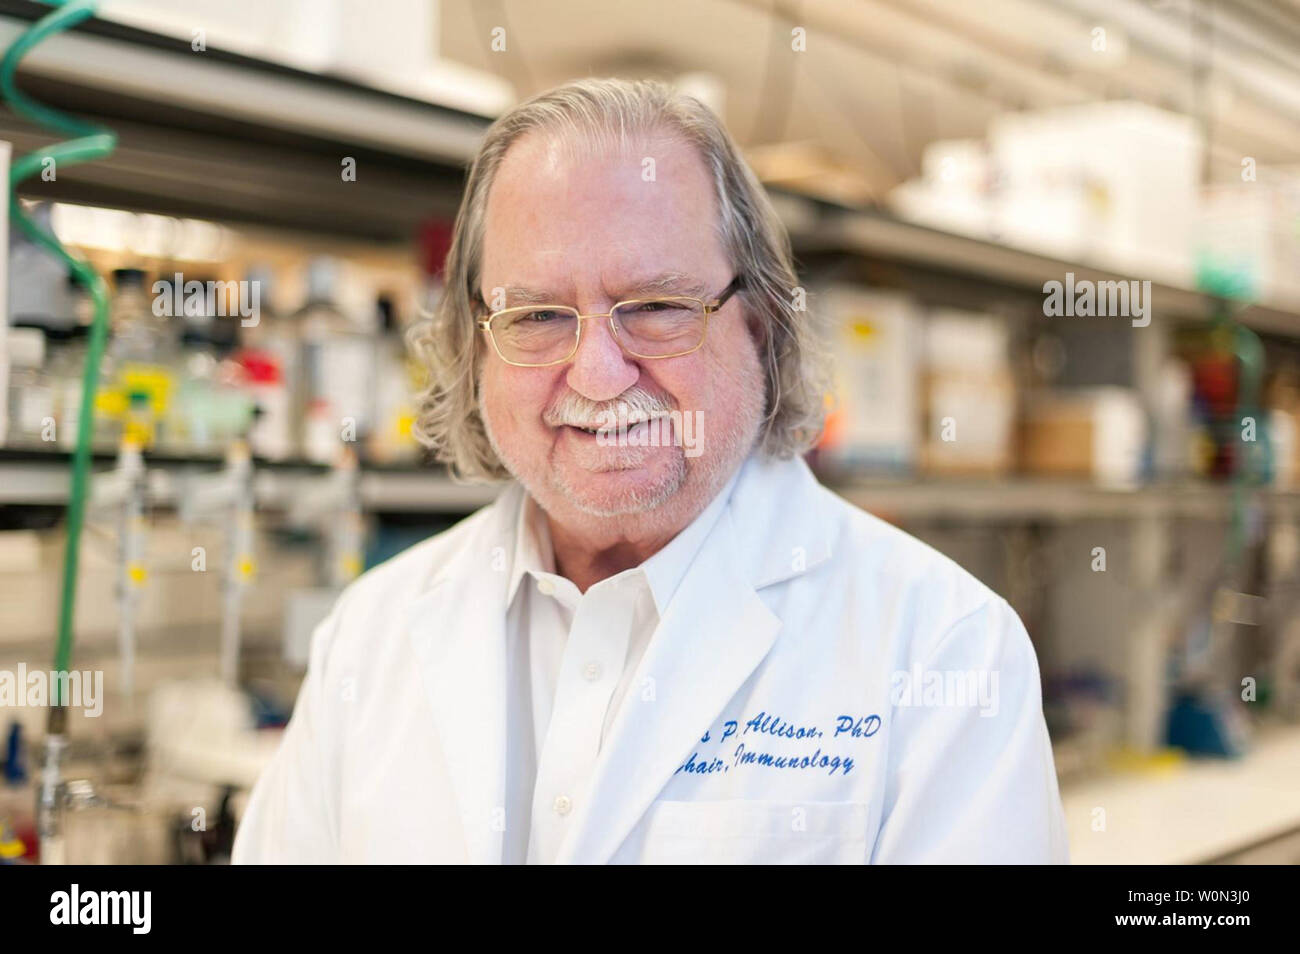 "James P. Allison (pictured here) of the University of Texas MD Anderson Cancer Center and Tasuku Honjo of Kyoto University were jointly awarded the Nobel Prize in Physiology or Medicine 2018 on October 1, 2018, ""for their discovery of cancer therapy by inhibition of negative immune regulation."" Photo courtesy University of Texas MD Anderson Cancer Center/UPI Stock Photo"